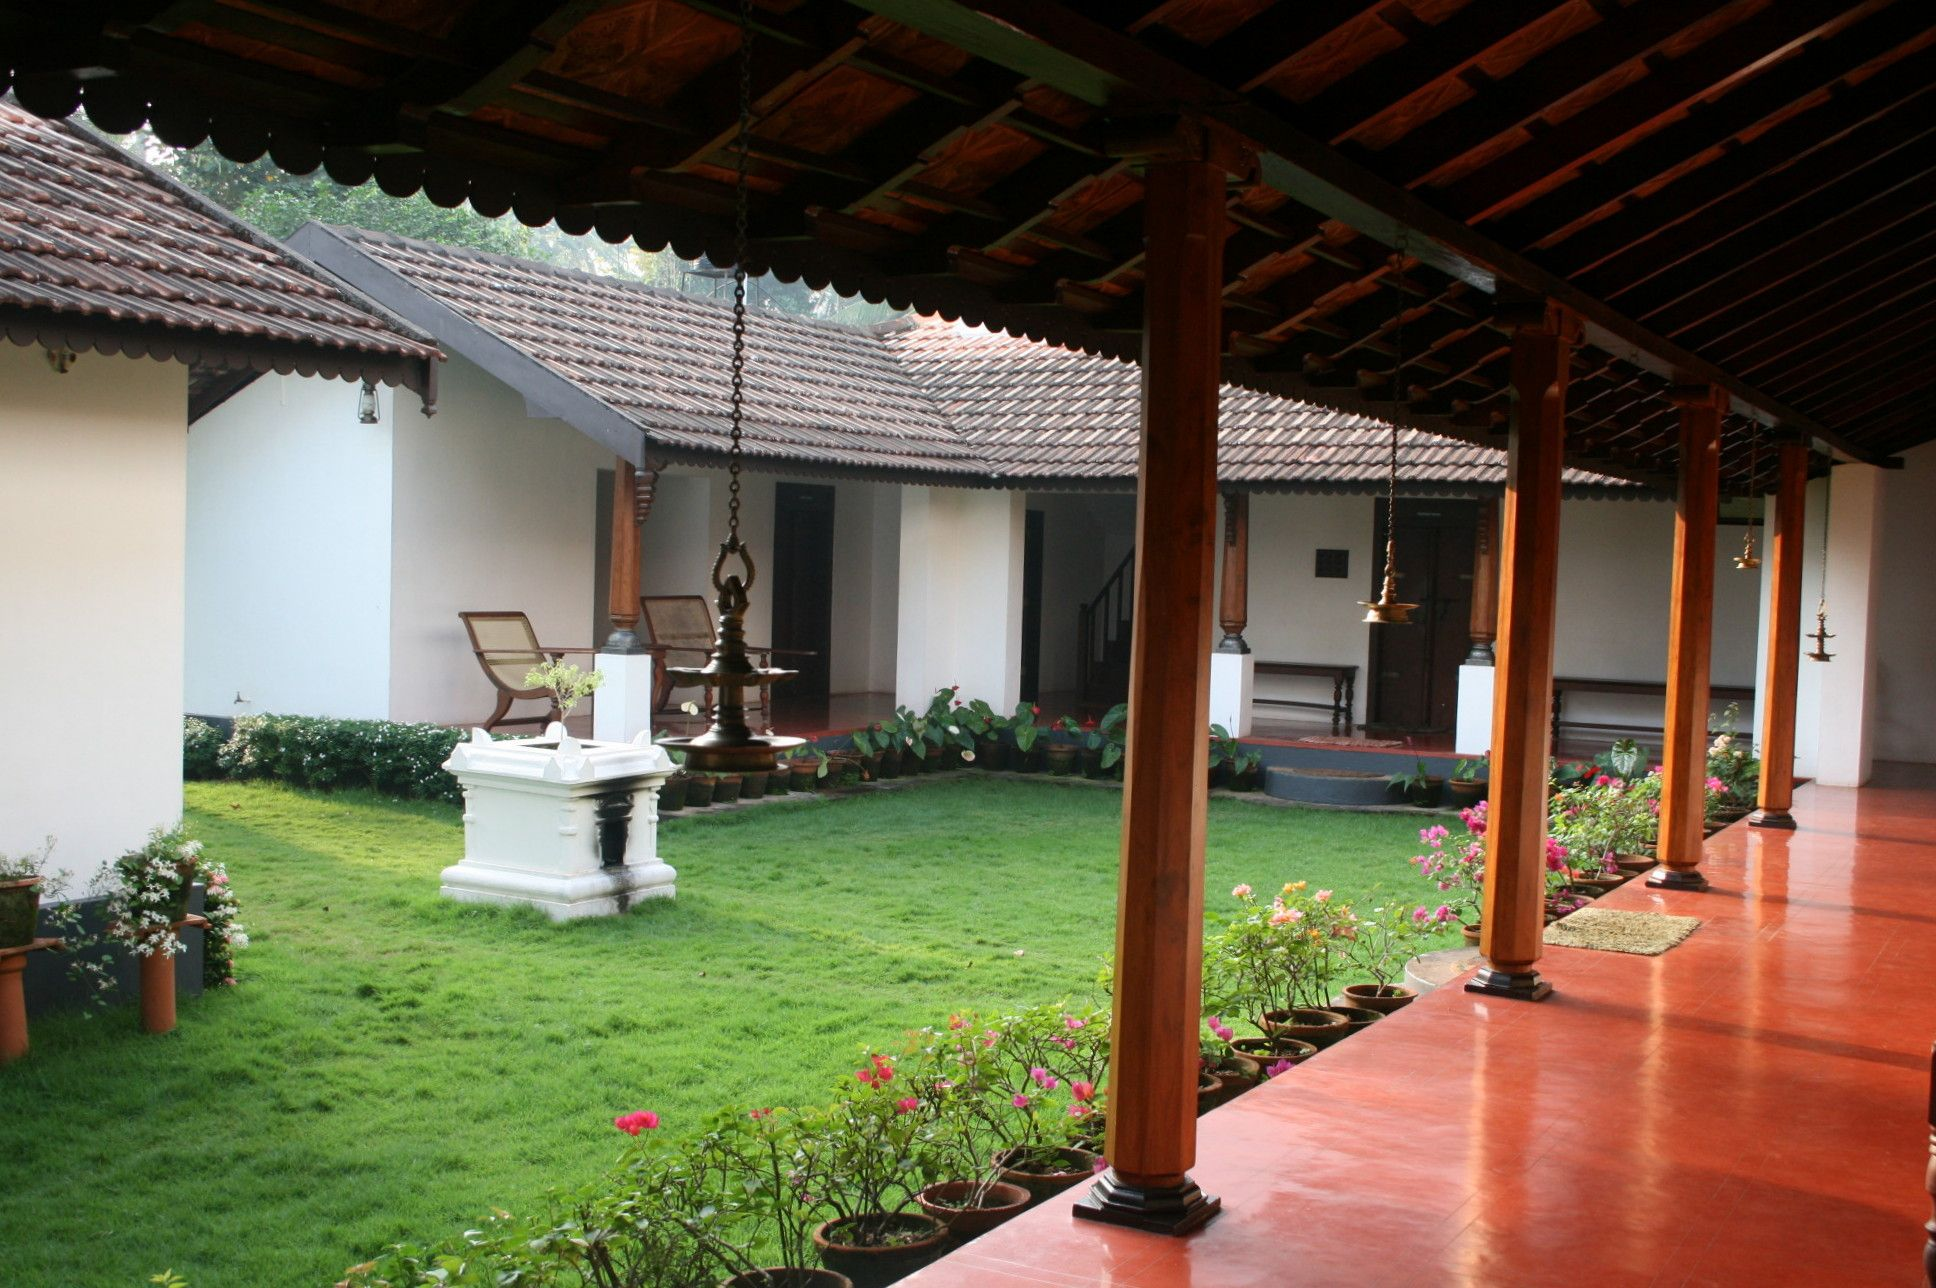 Heritage homestead harivihar traditional house kerala for House garden design india